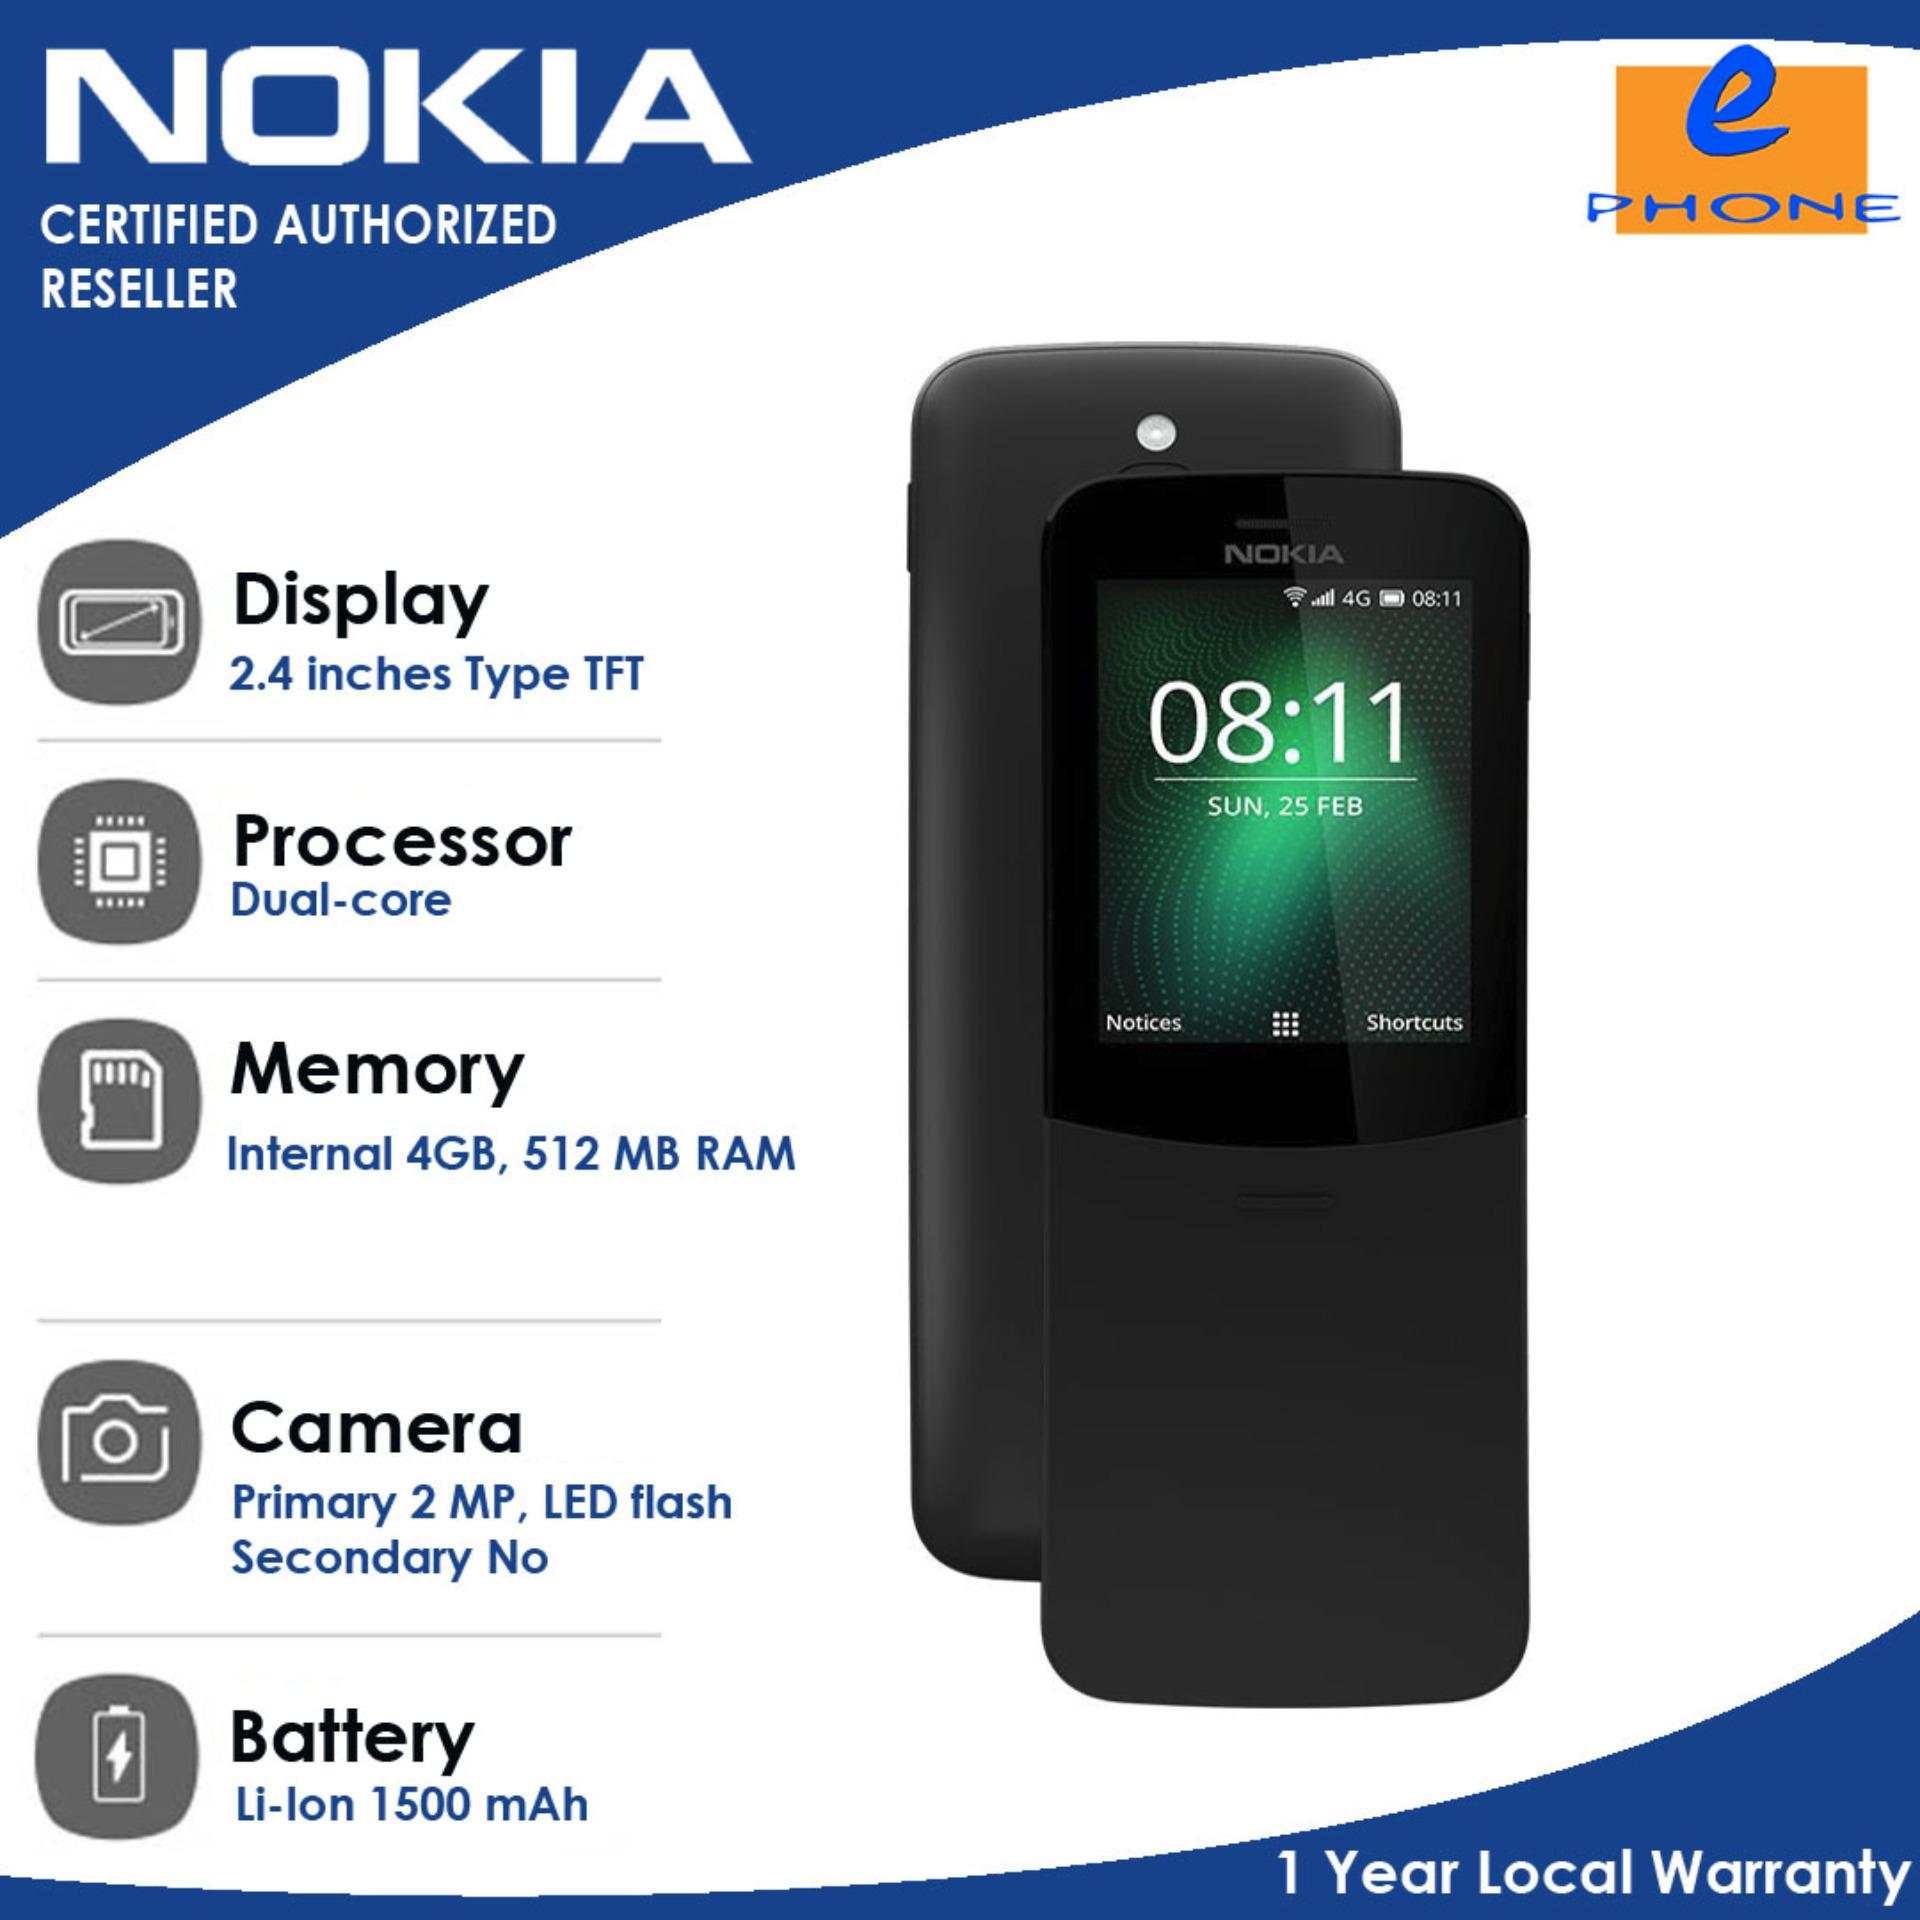 Nokia 8110 4GB  2.4 inches 4GBRAM+512RAM 2MPBack Front KaiOS Qualcomm MSM8905 Snapdragon 205 Dual-Core 1500 mah with 1 Year Local Warranty Authentic/Original Dual Sim TFT 240x320 4:3 Ratio Micro USB 2.0 (Traditional Black)